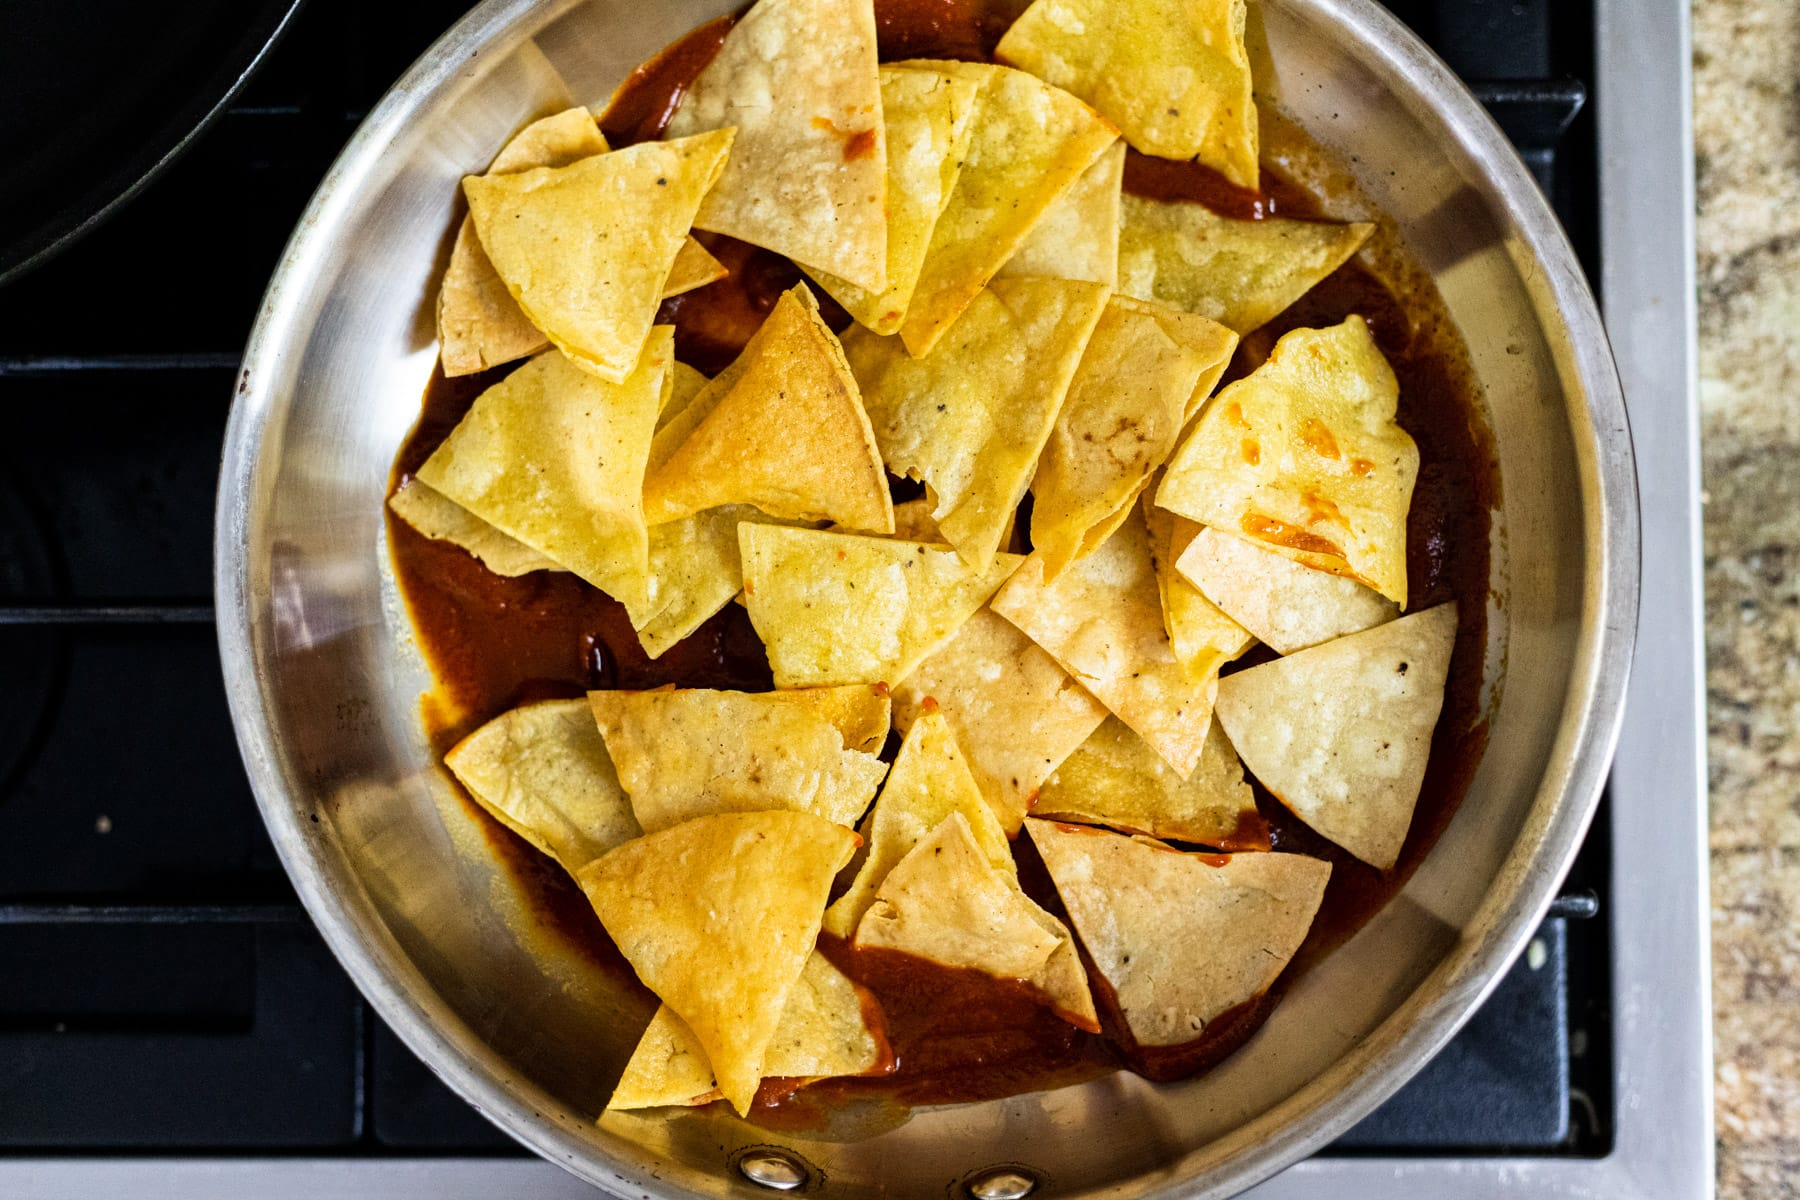 Tortilla chips on top of red chili sauce in a skillet.